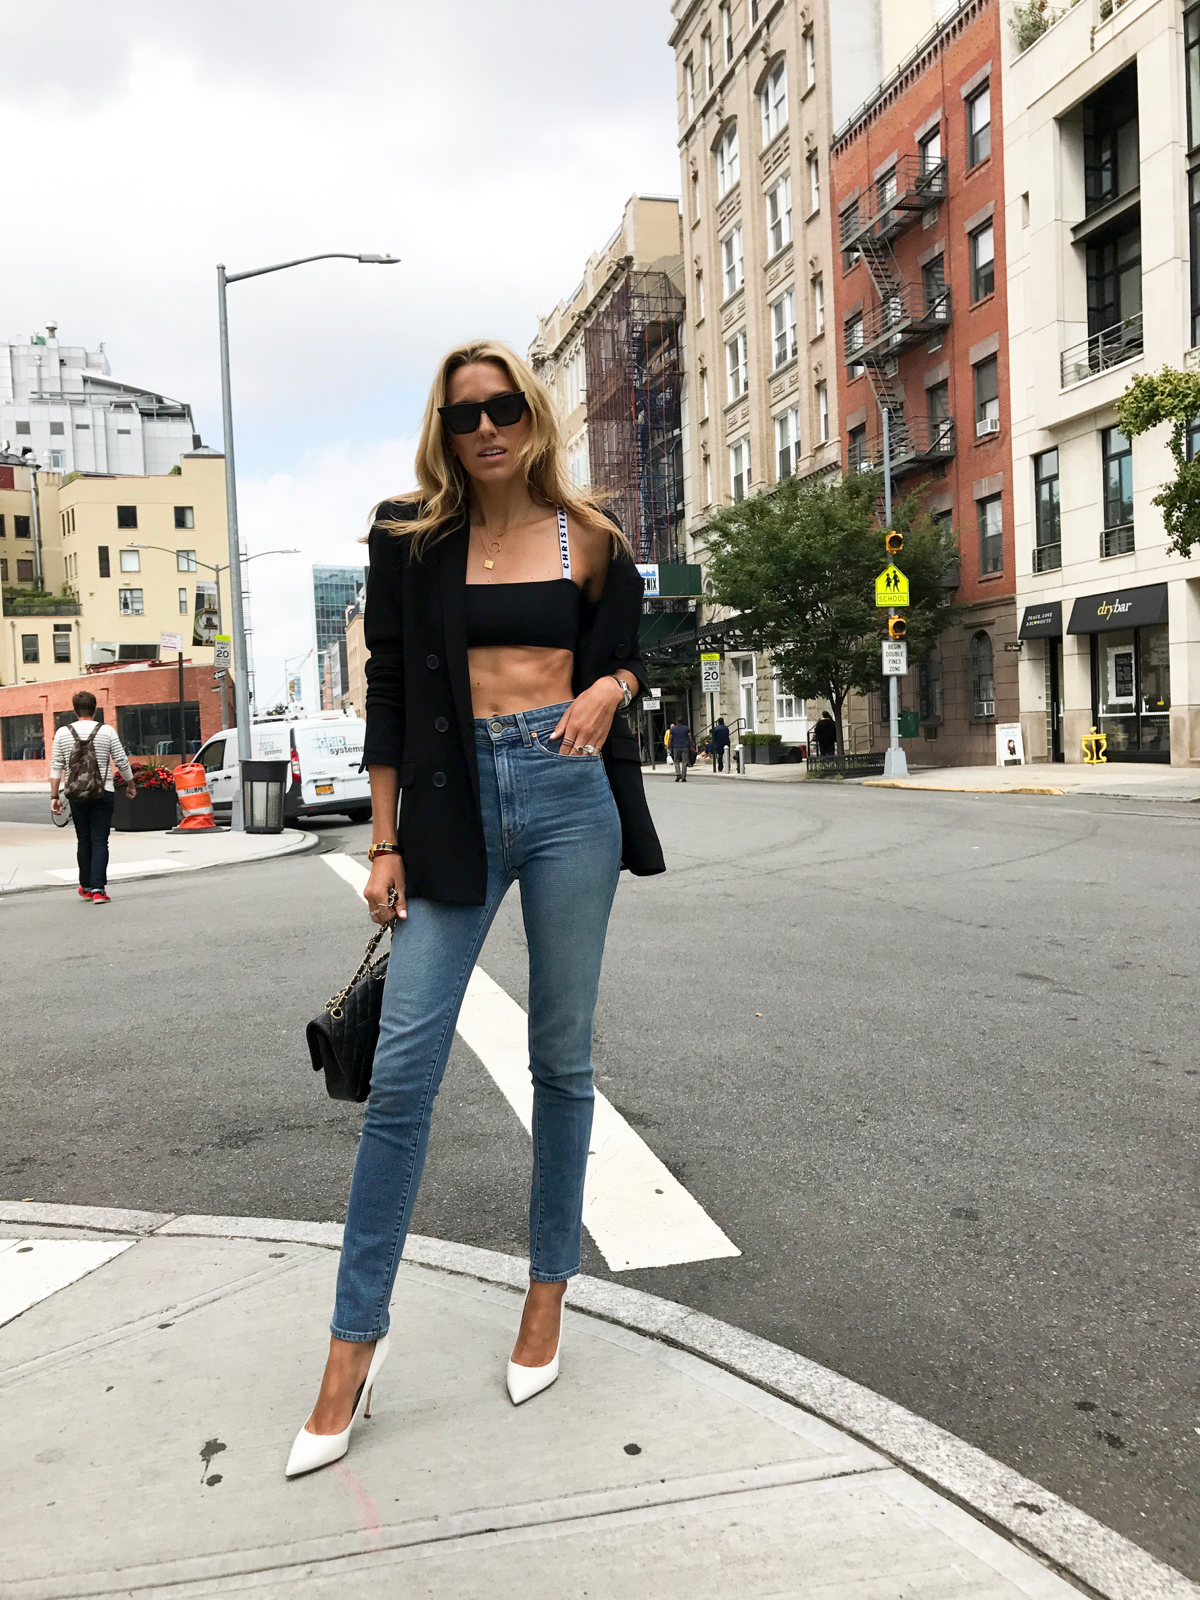 Dior Bralette, Celine Edge sunglasses, Khaite Jeans, White pumps, Double breasted blazer, Abs, NYFW, New York Fashion week street style